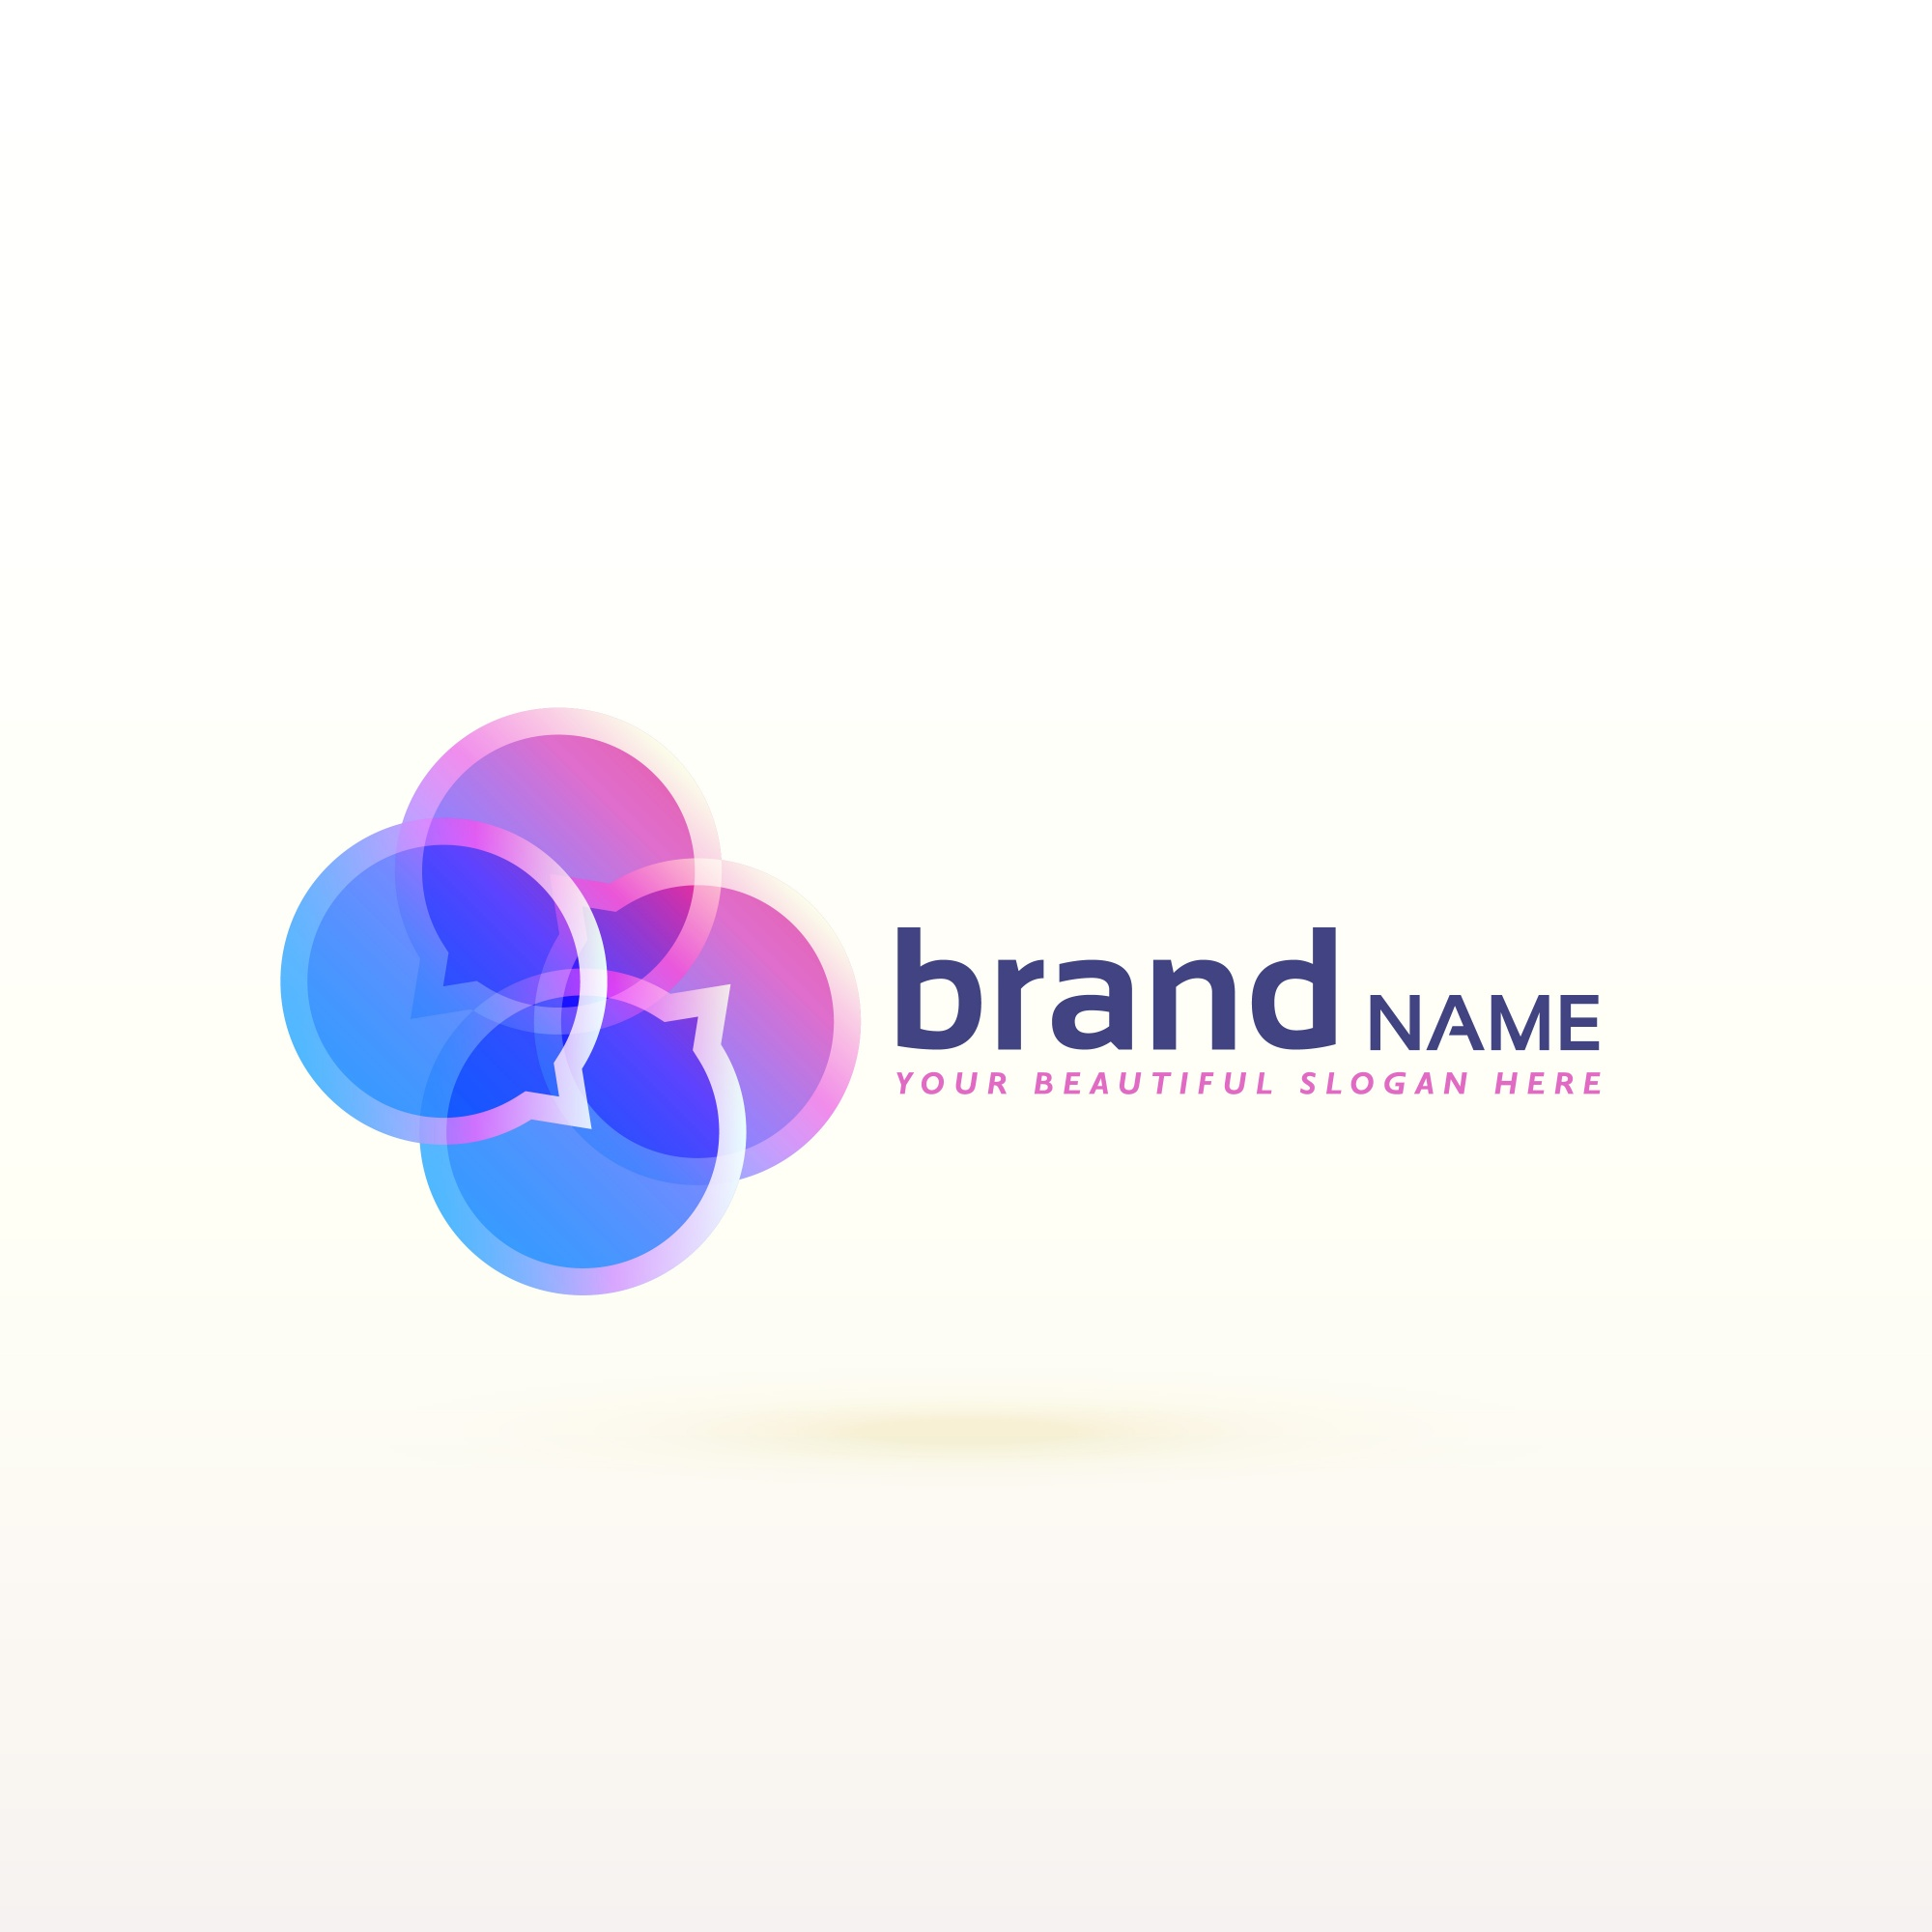 Modern logo with speech balloons